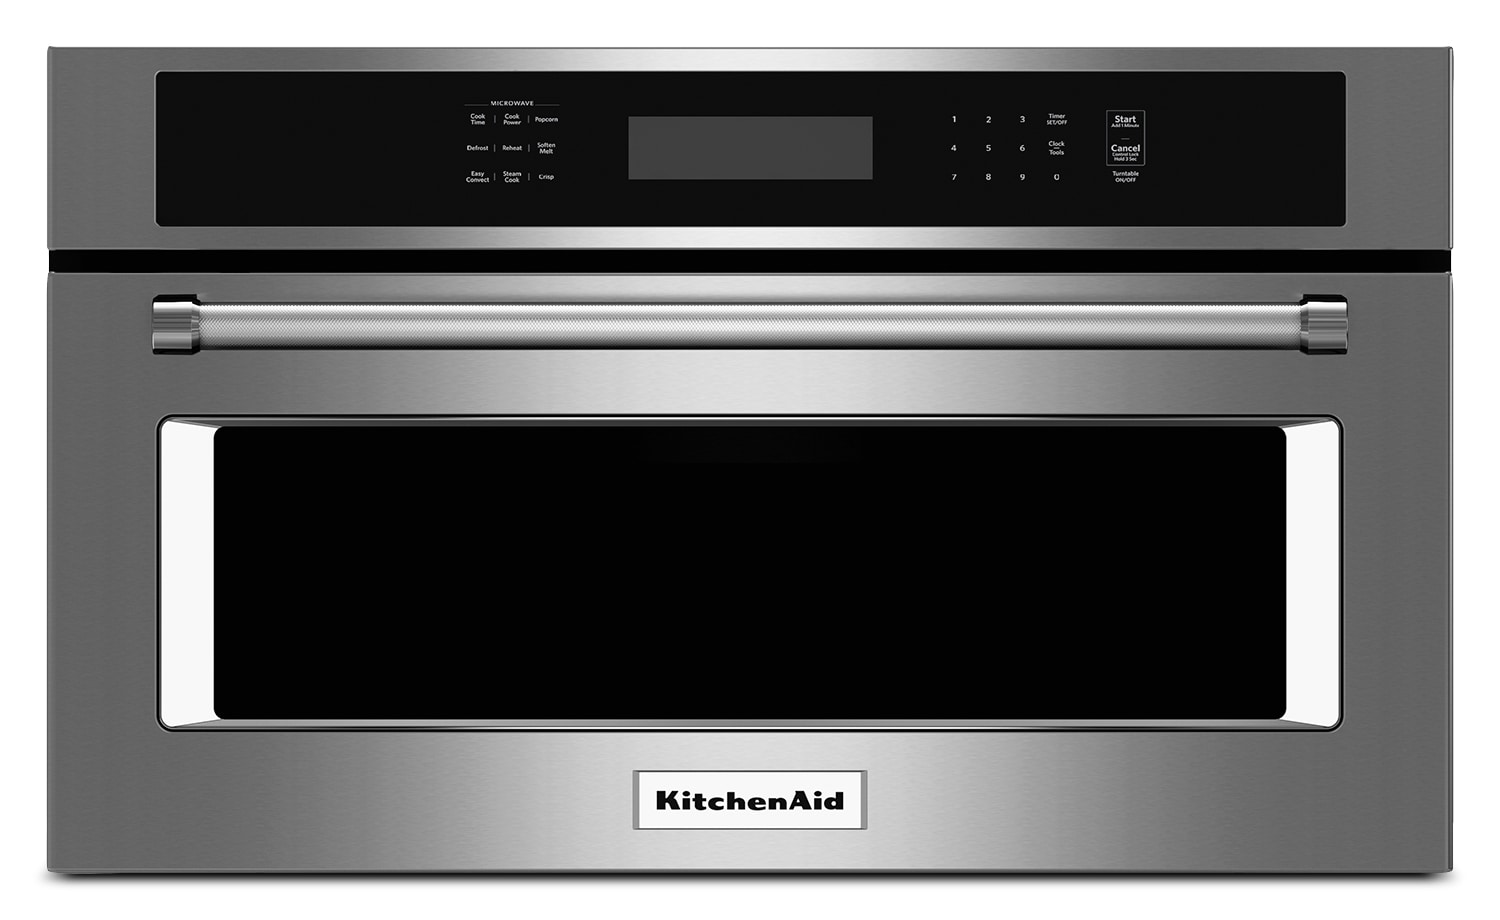 Cooking Products - KitchenAid Stainless Steel Microwave (1.4 Cu. Ft.) - KMBP107ESS